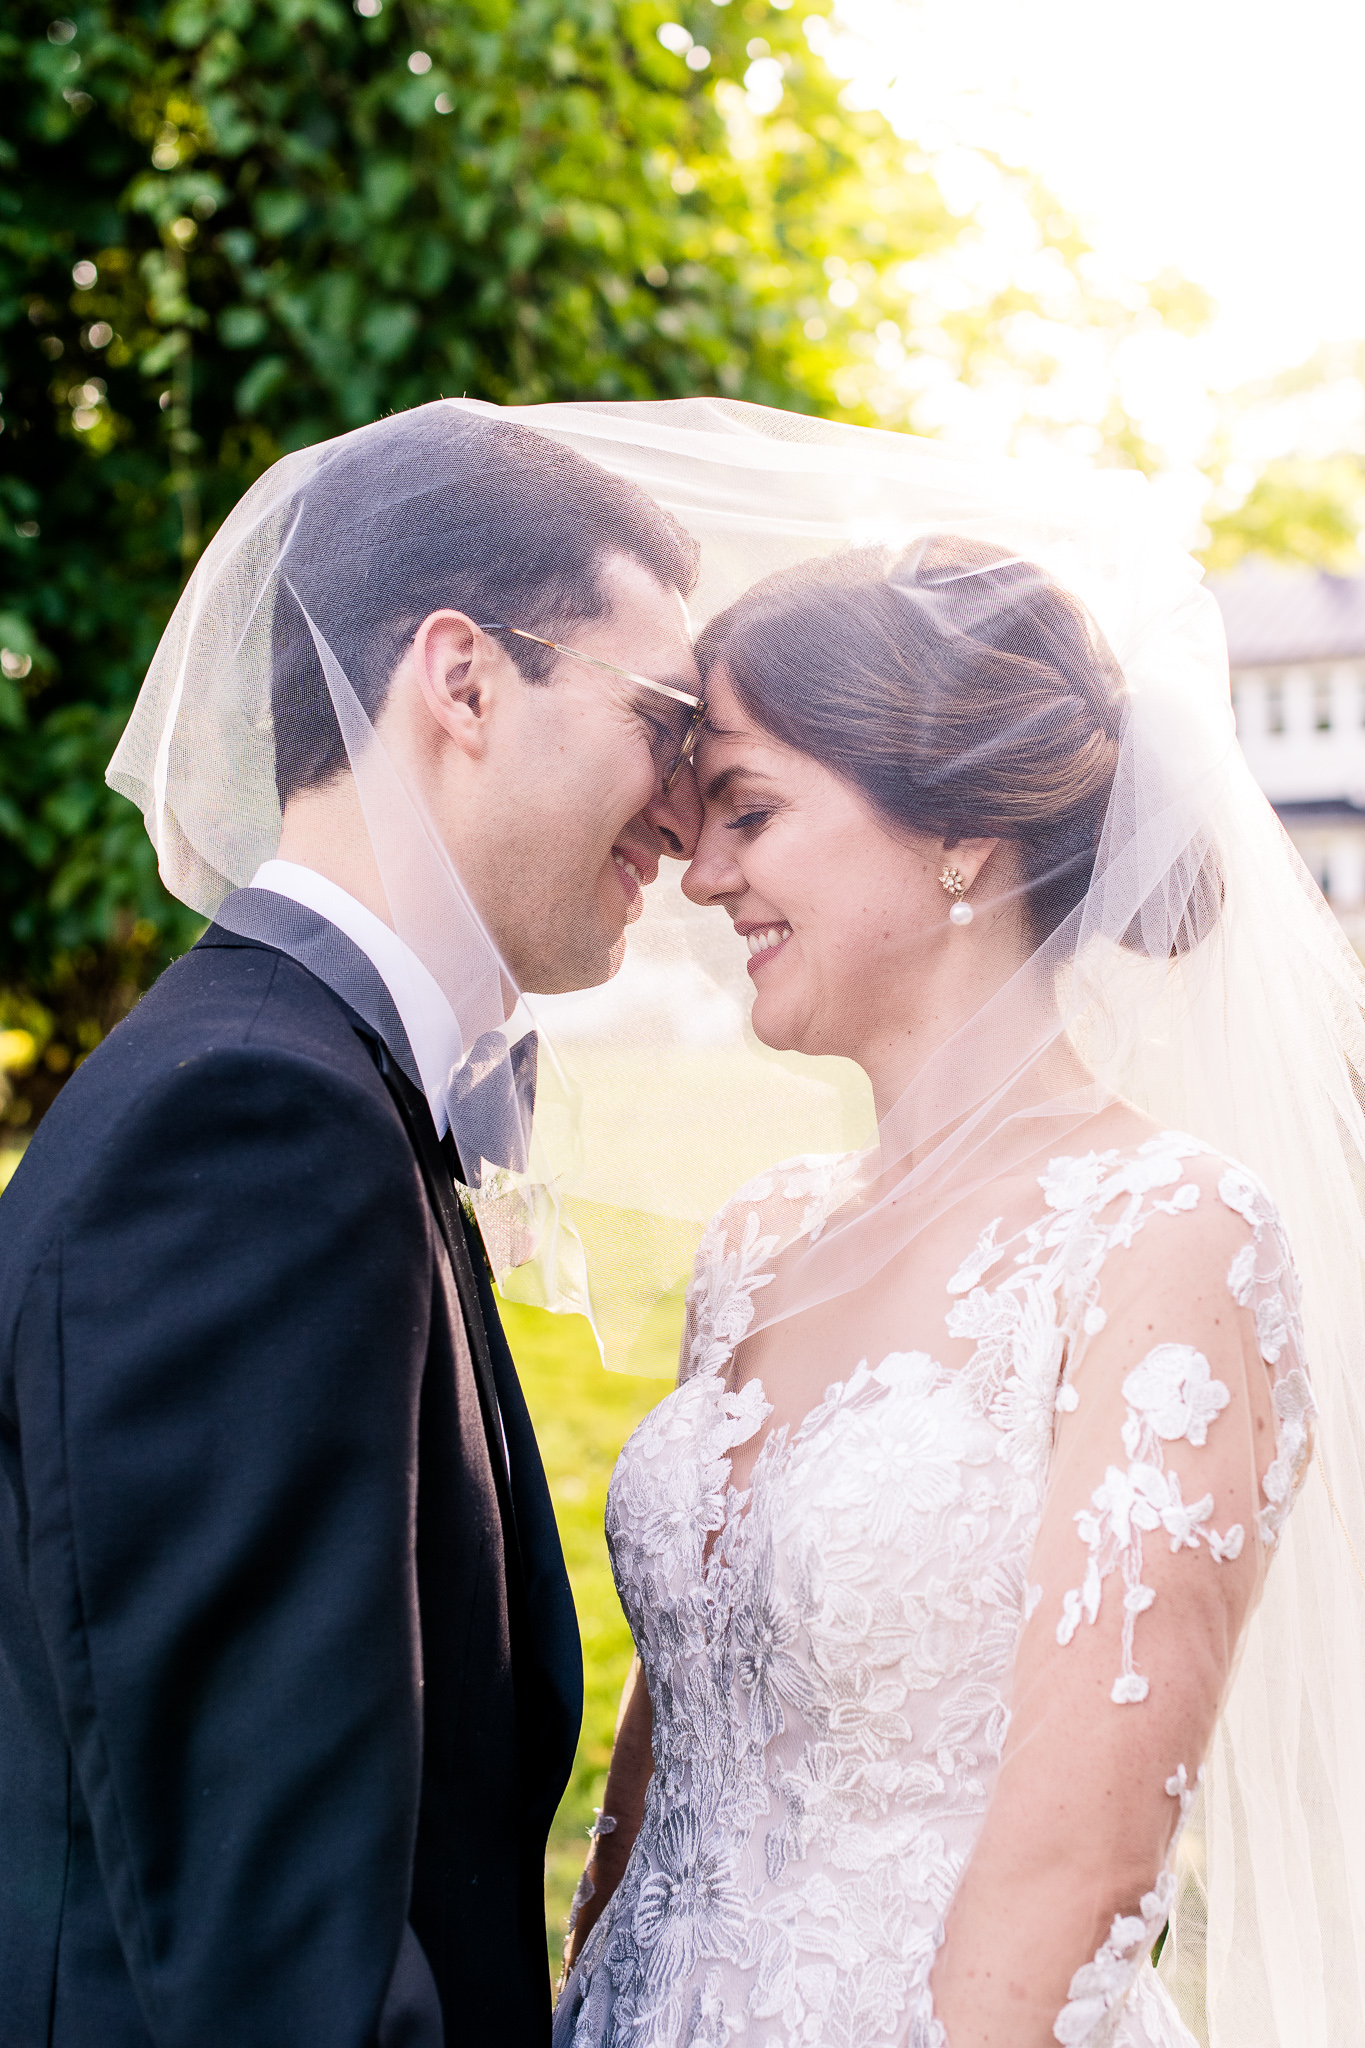 A bride and groom lean in to touch noses for an intimate moment under her veil during golden hour at The Barns at Hamilton Station Vineyard in Leesburg, Northern Virginia